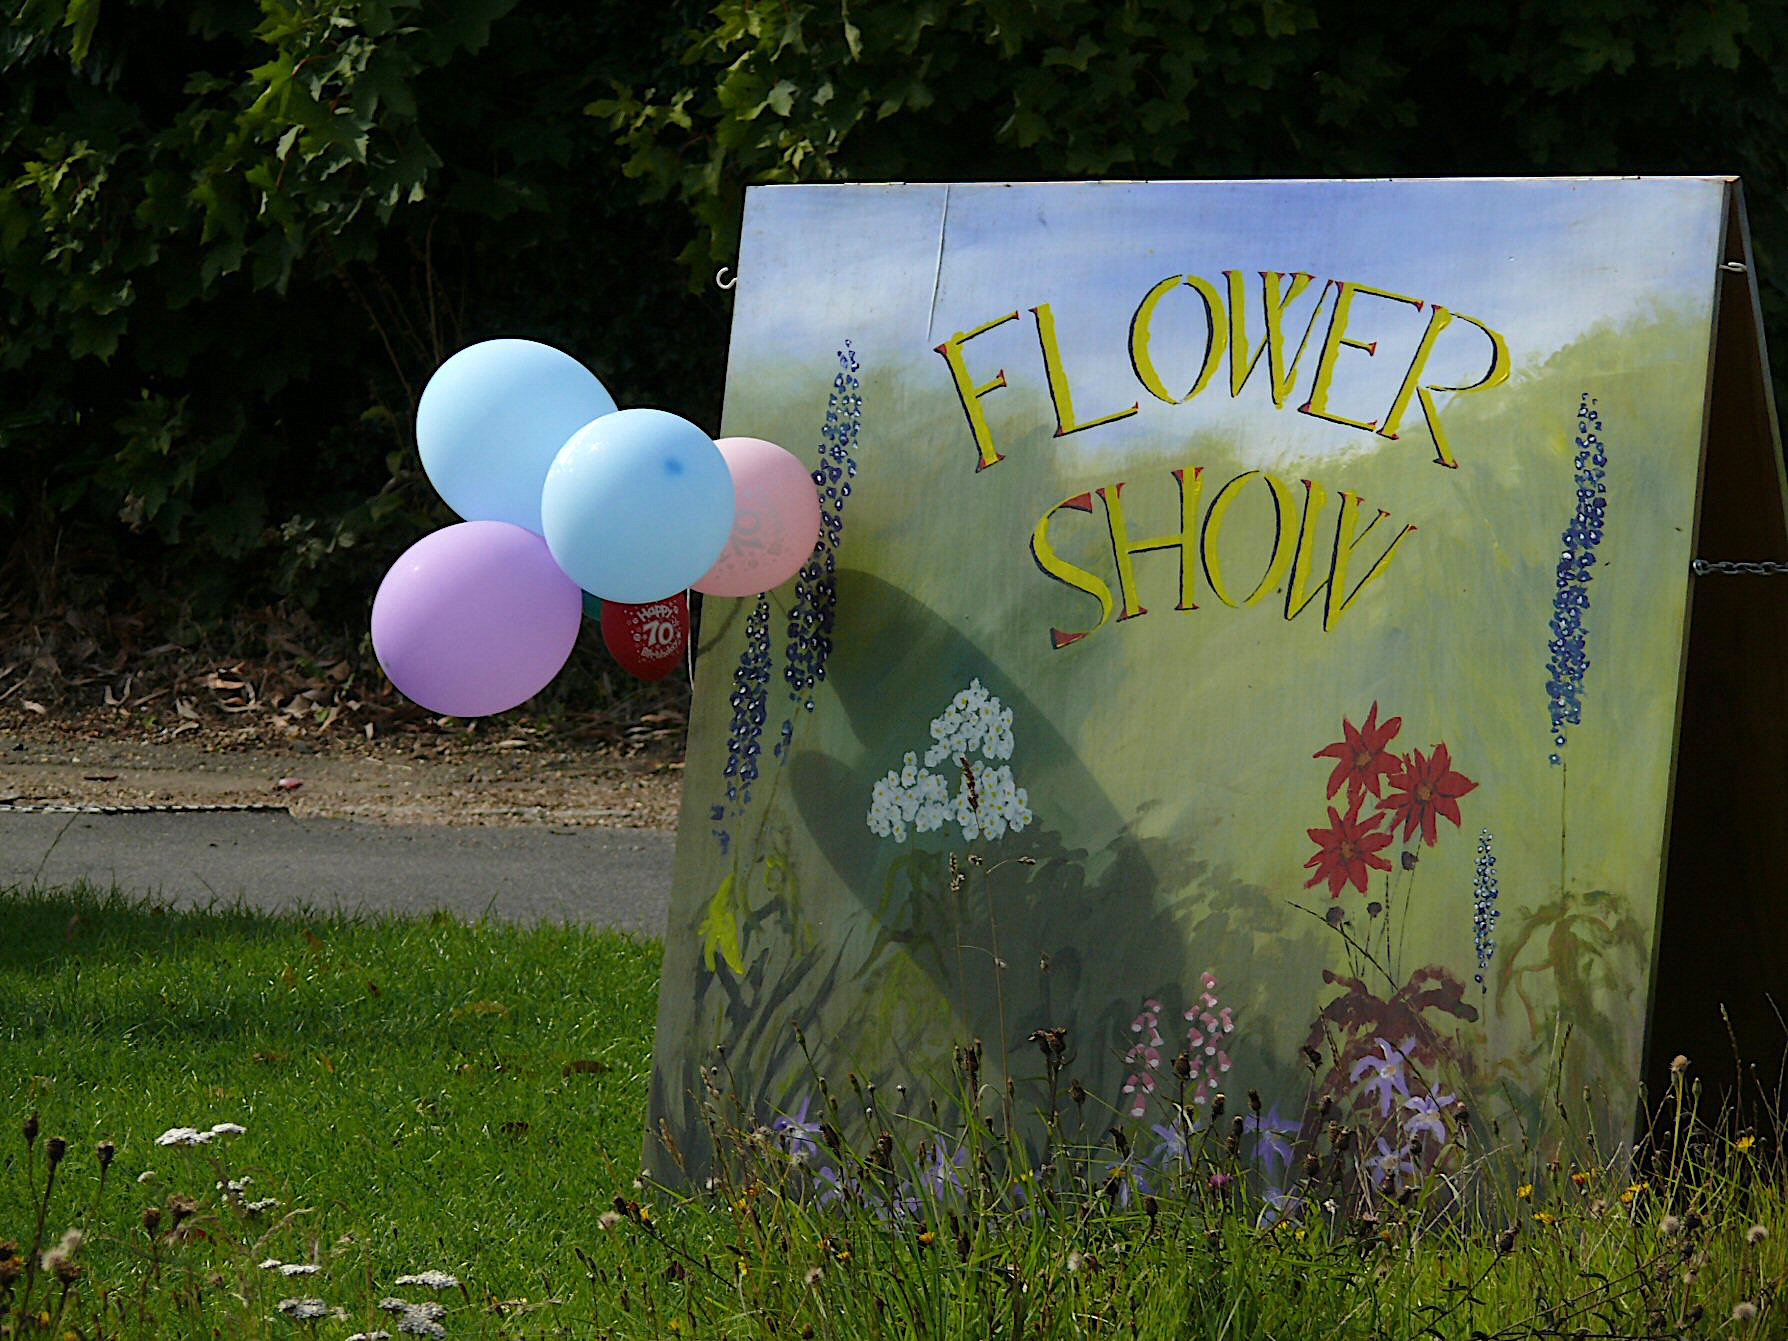 Sign to horticultural show